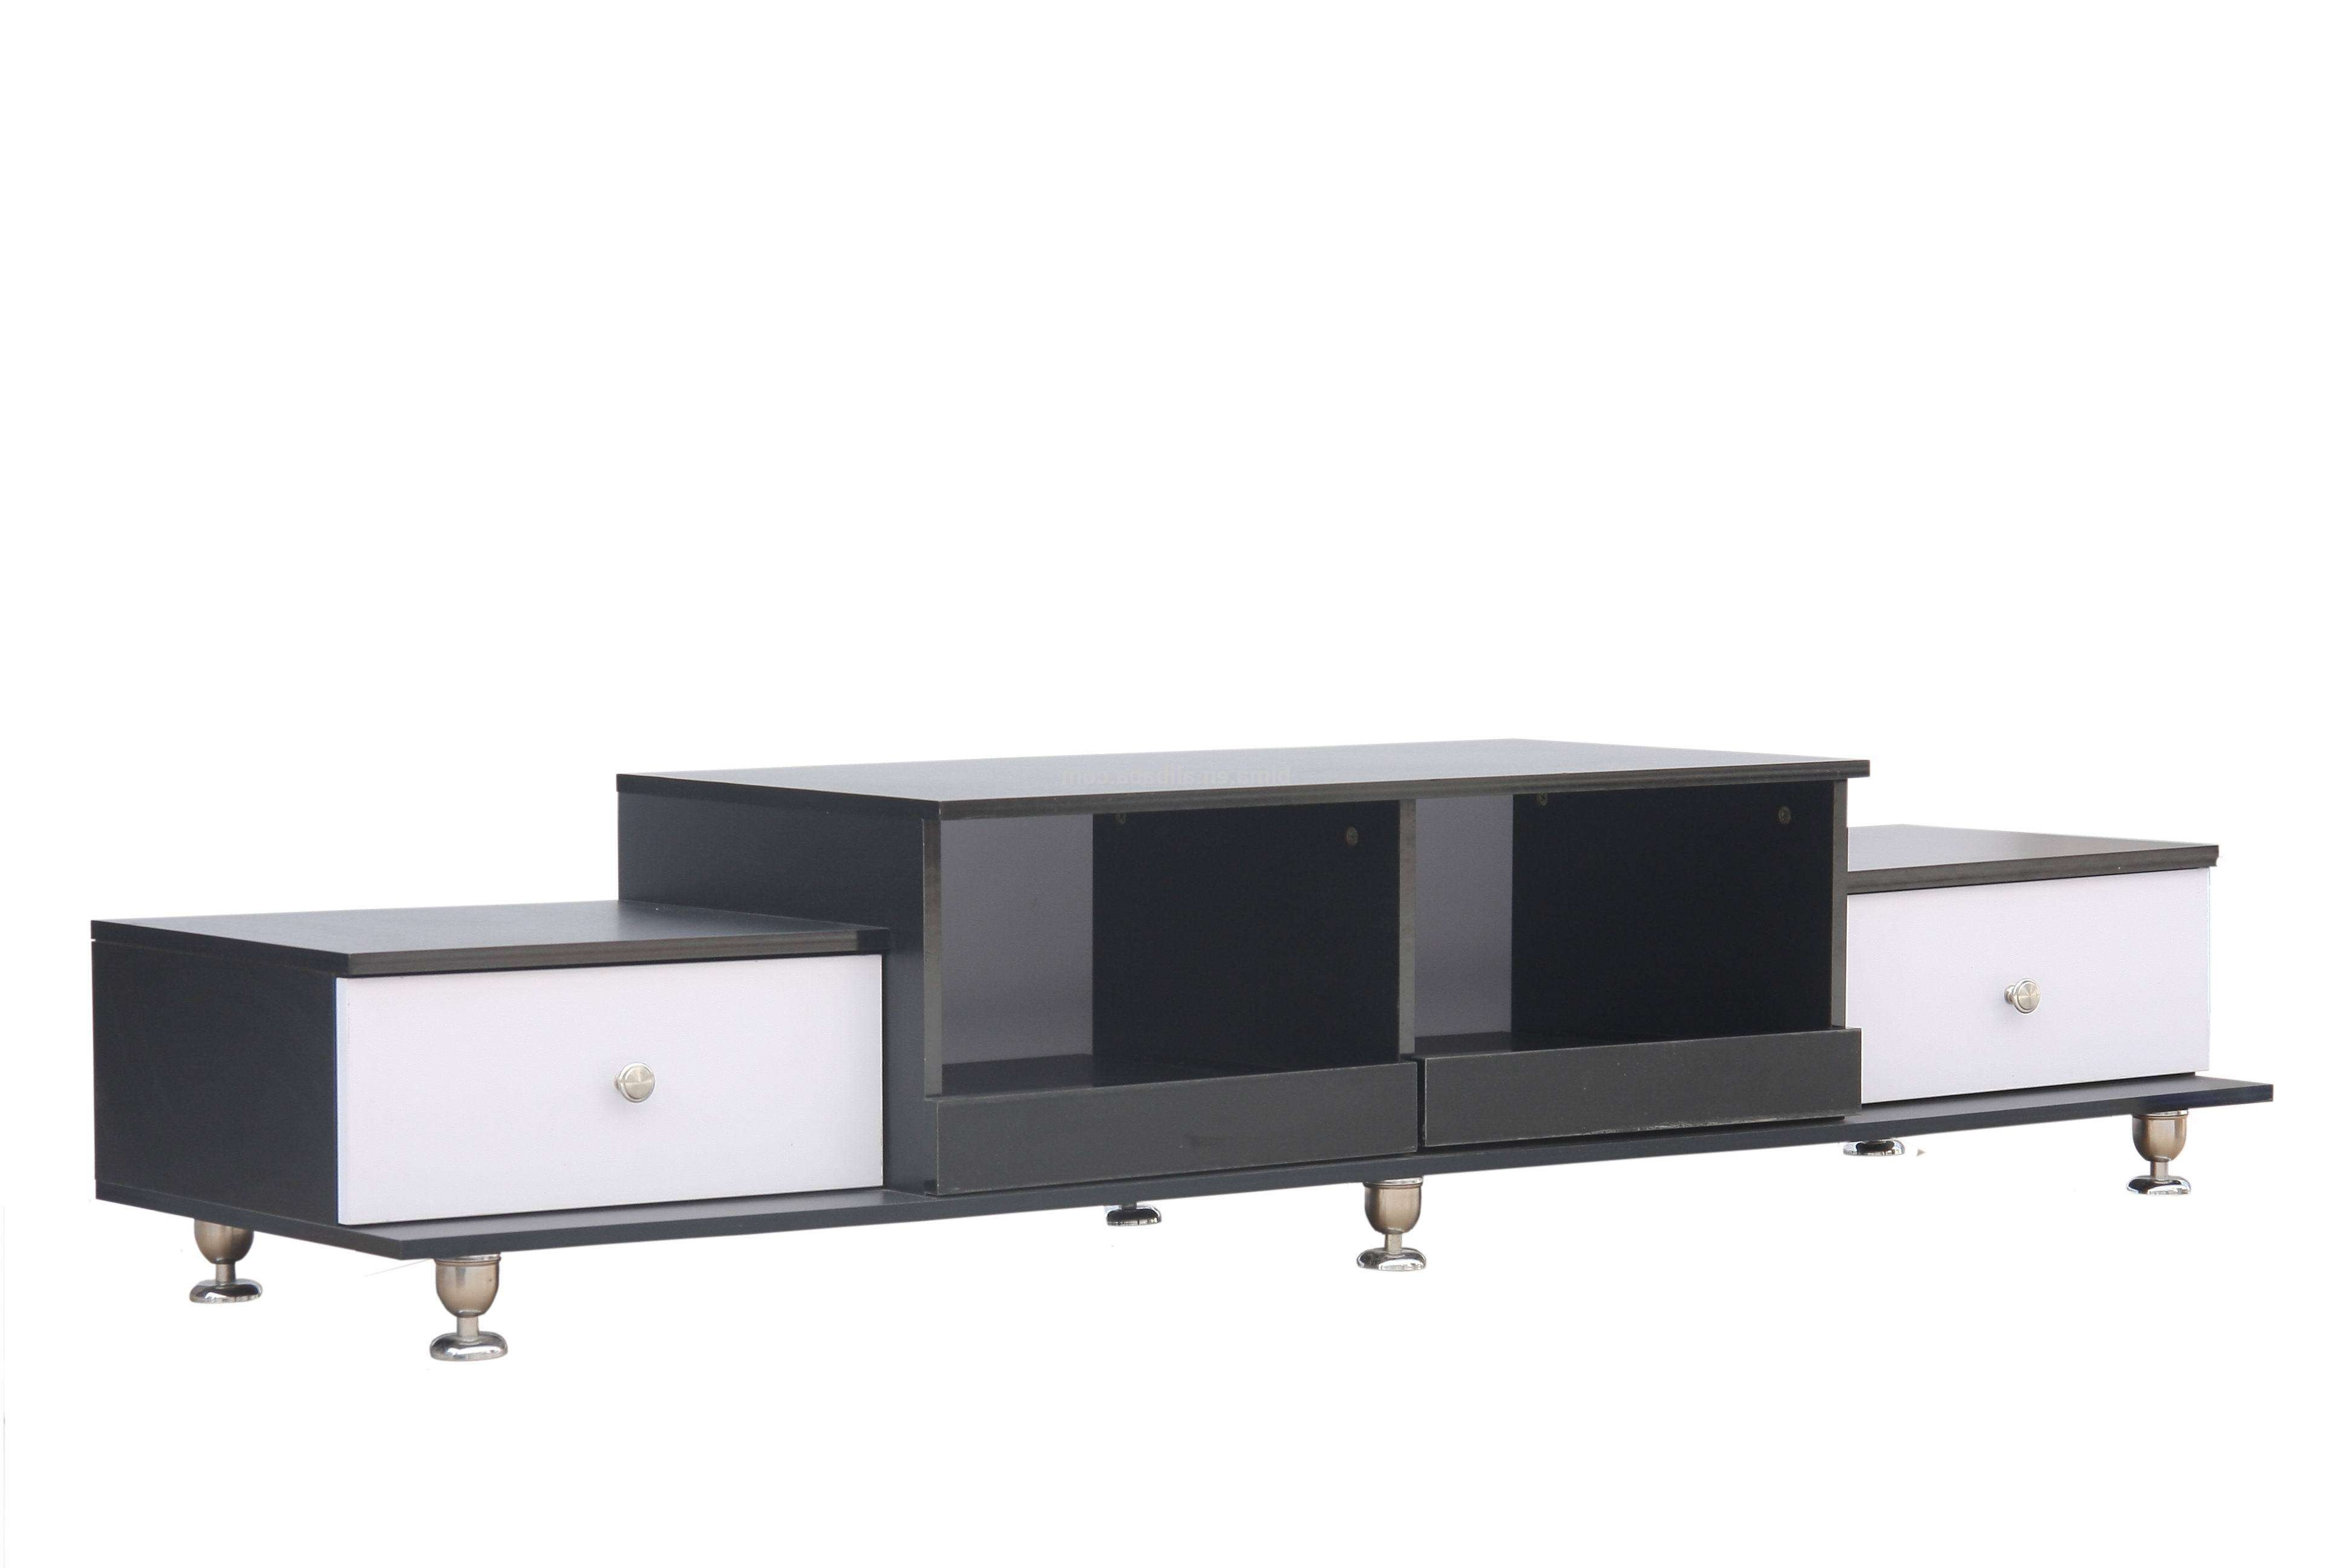 L Shaped Tv Cabinet – Buy L Shaped Tv Cabinet,tv Cabinet,tv Bench With Regard To L Shaped Tv Stands (View 3 of 15)